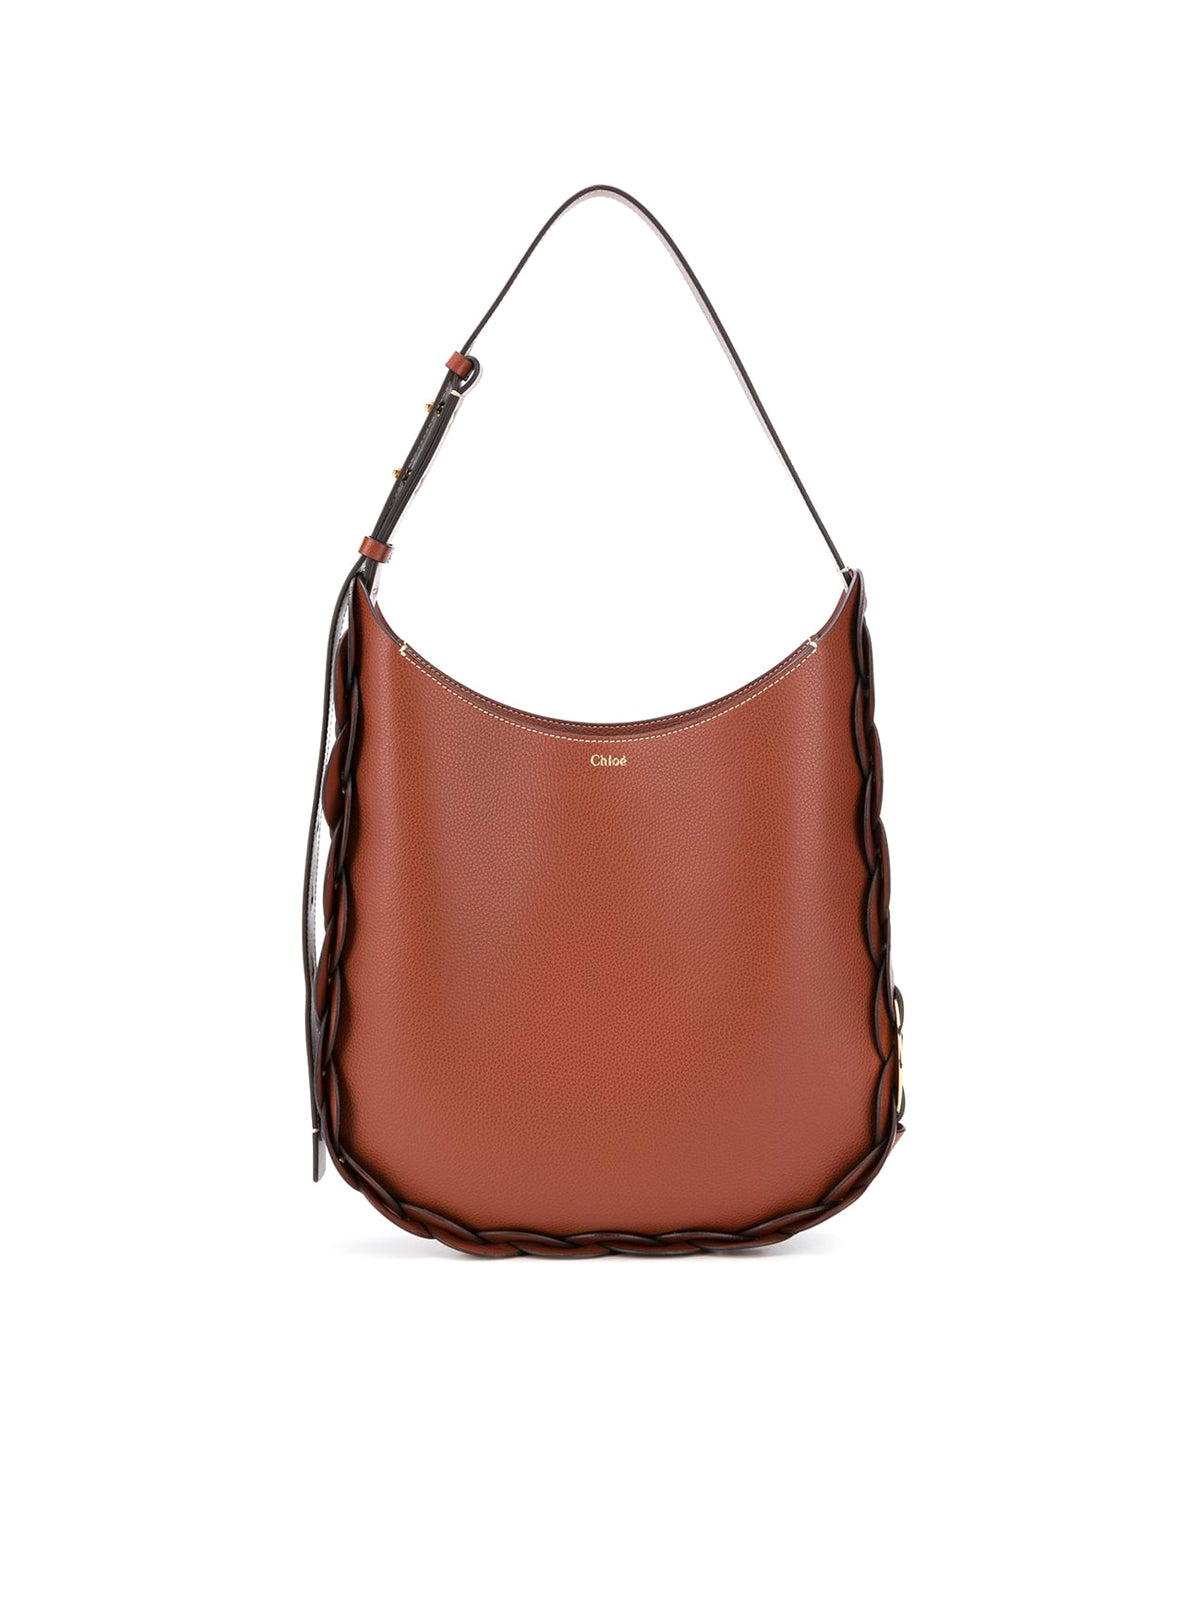 medium Darryl shoulder bag